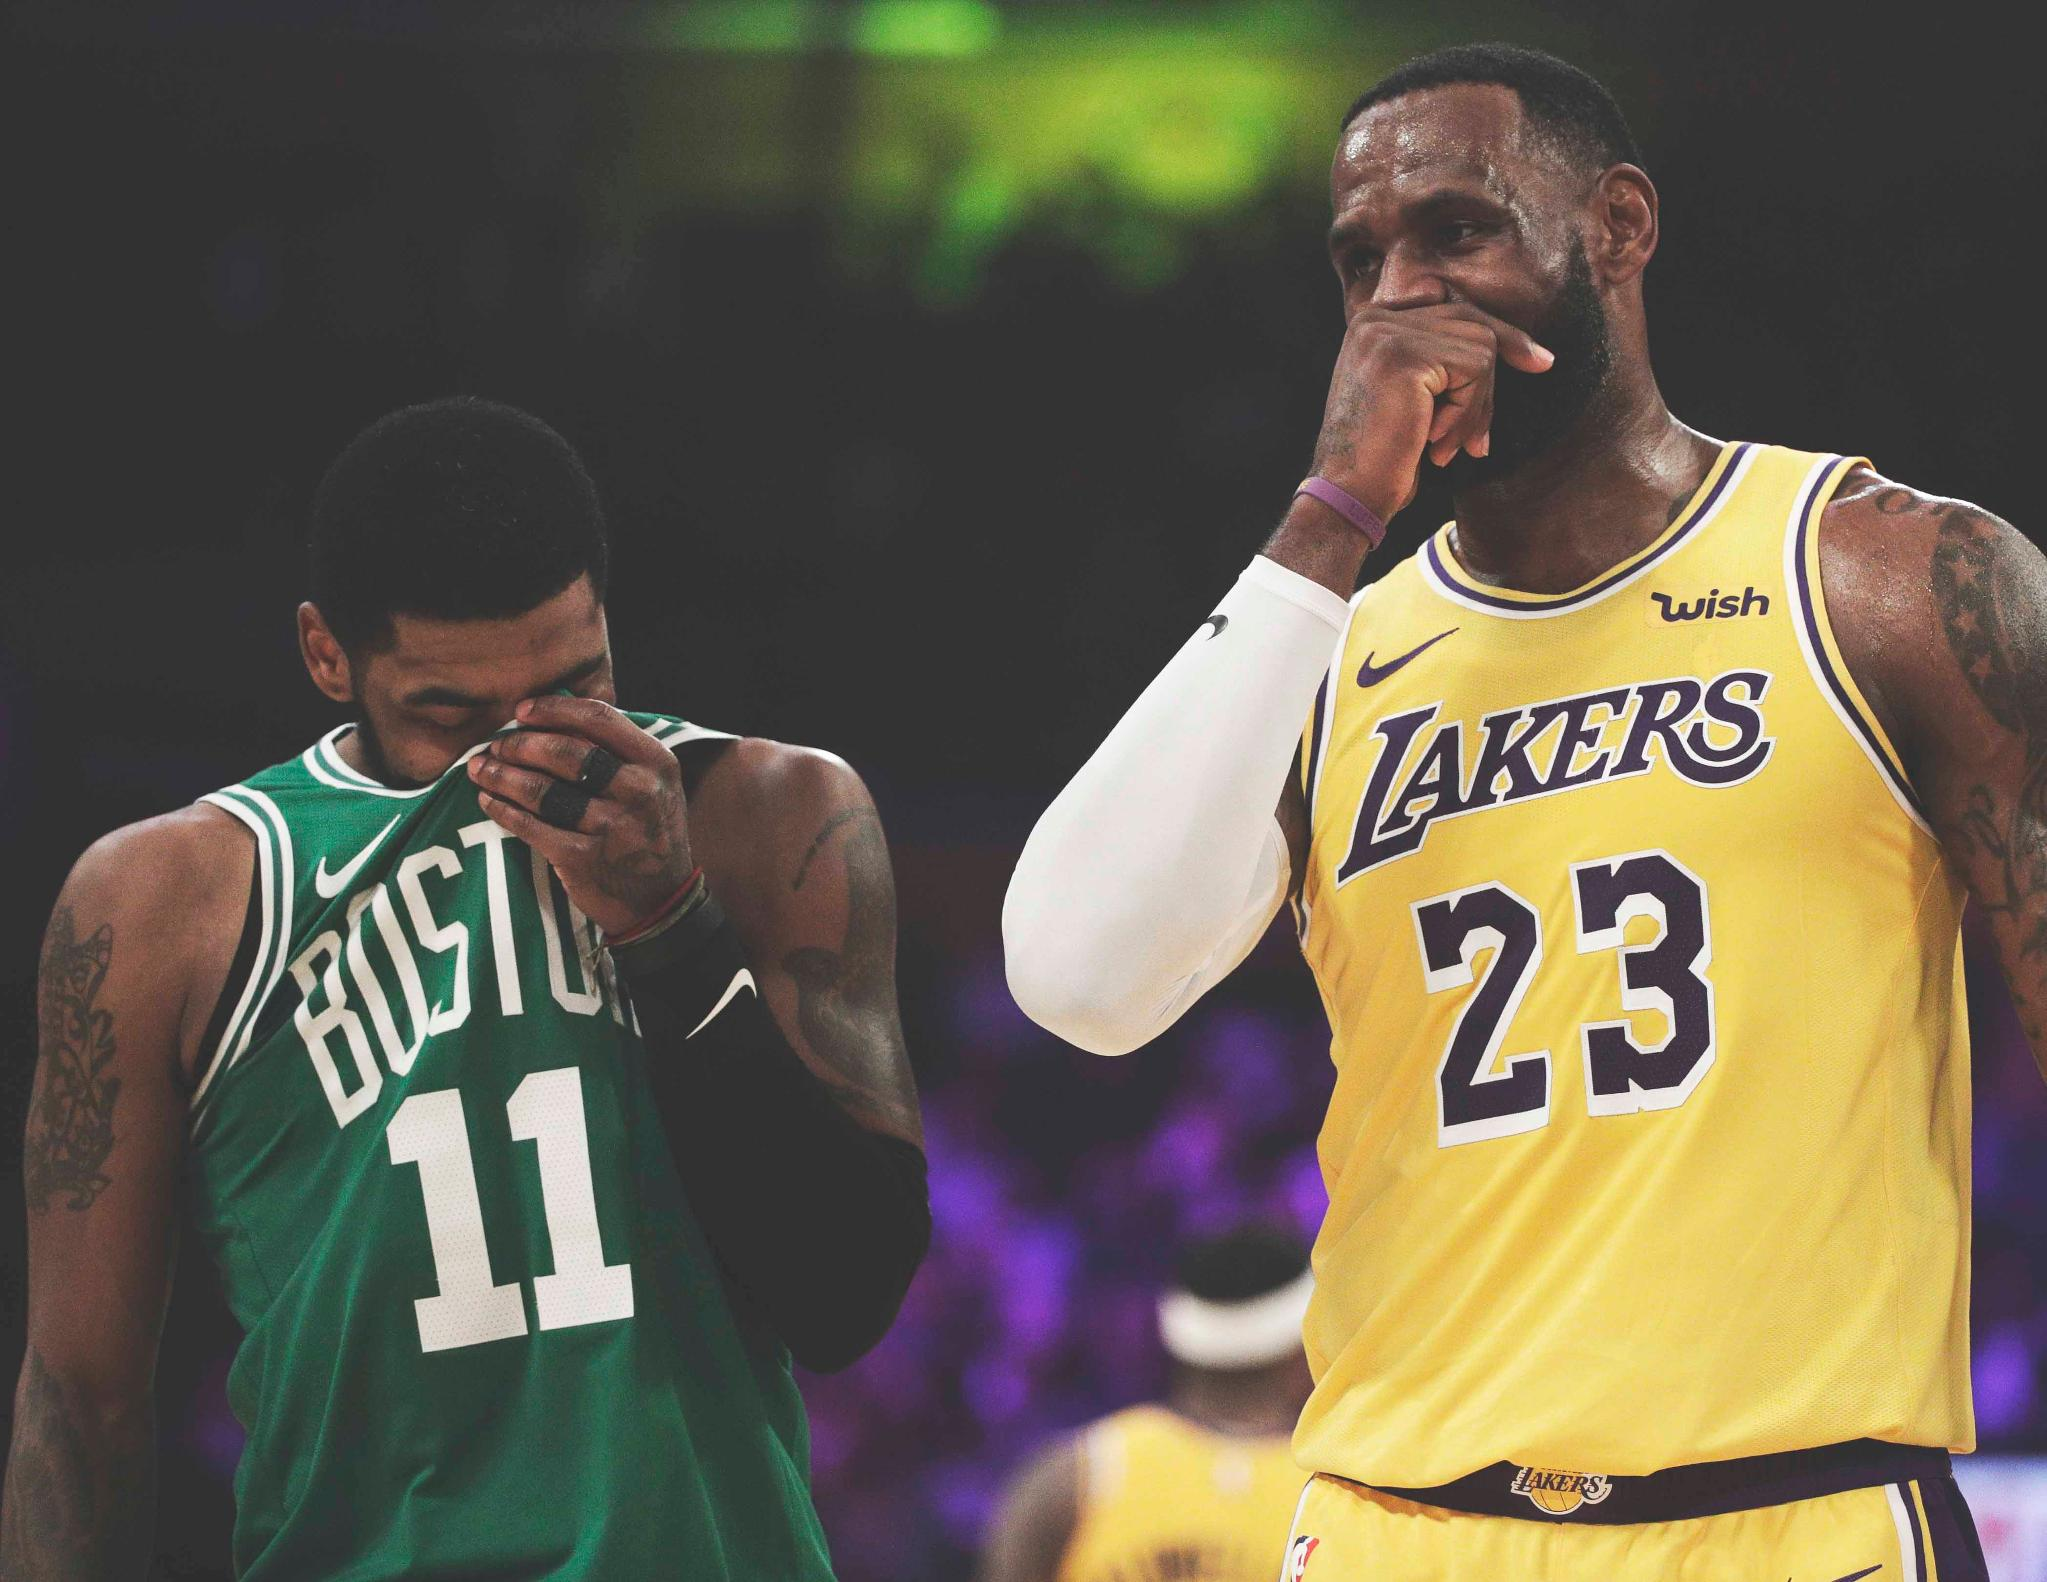 Kyrie and the Celtics hand LeBron and the Lakers their 5th straight loss. https://t.co/SWpe6DKwjY